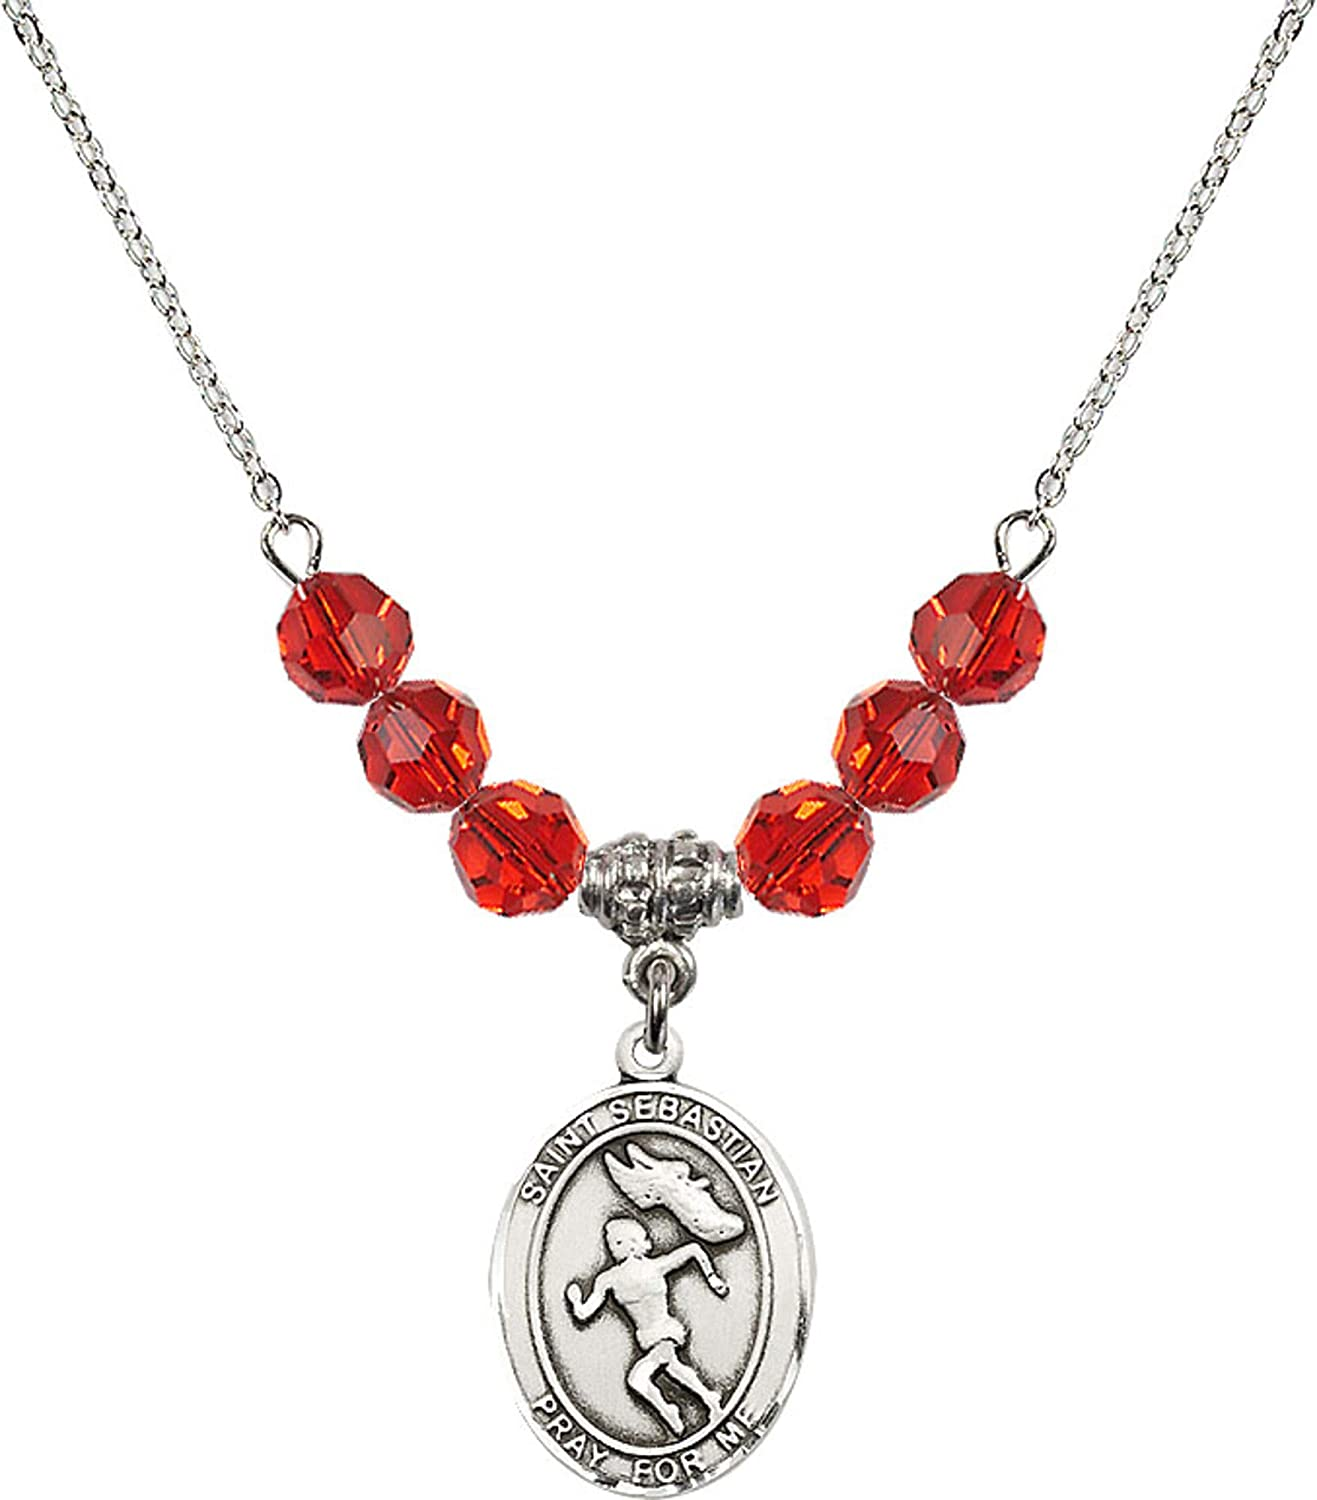 Bonyak Jewelry 18 Inch Rhodium Plated Necklace w// 6mm Red July Birth Month Stone Beads and Saint Sebastian//Track/&Field-Women Charm